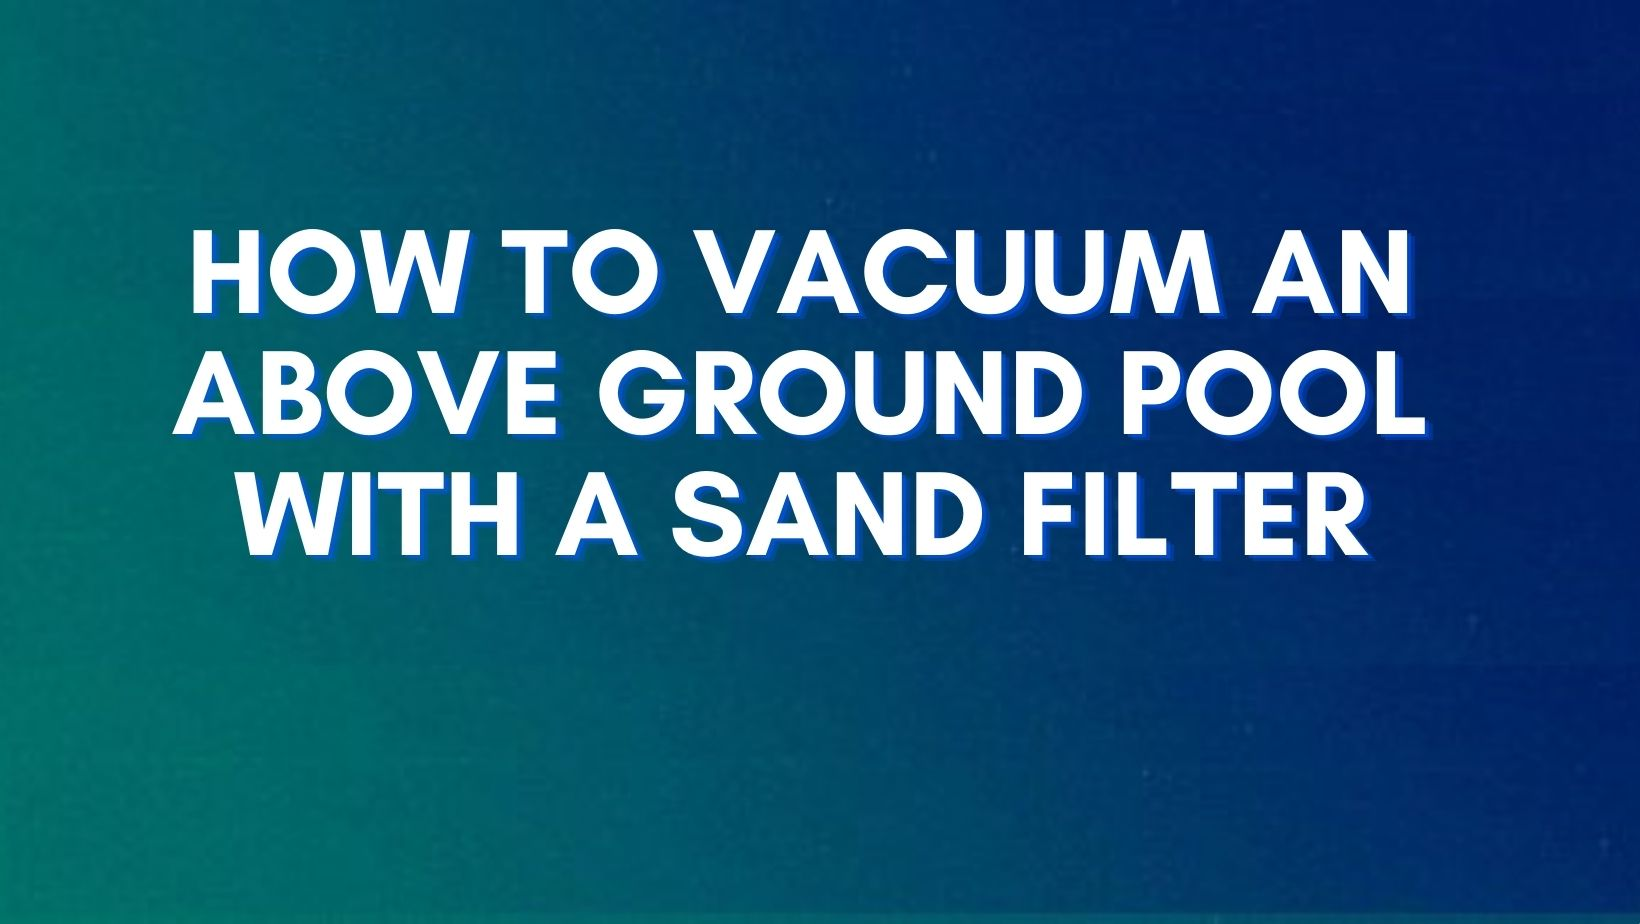 Guide to use a sand filter to vacuum an above ground pool